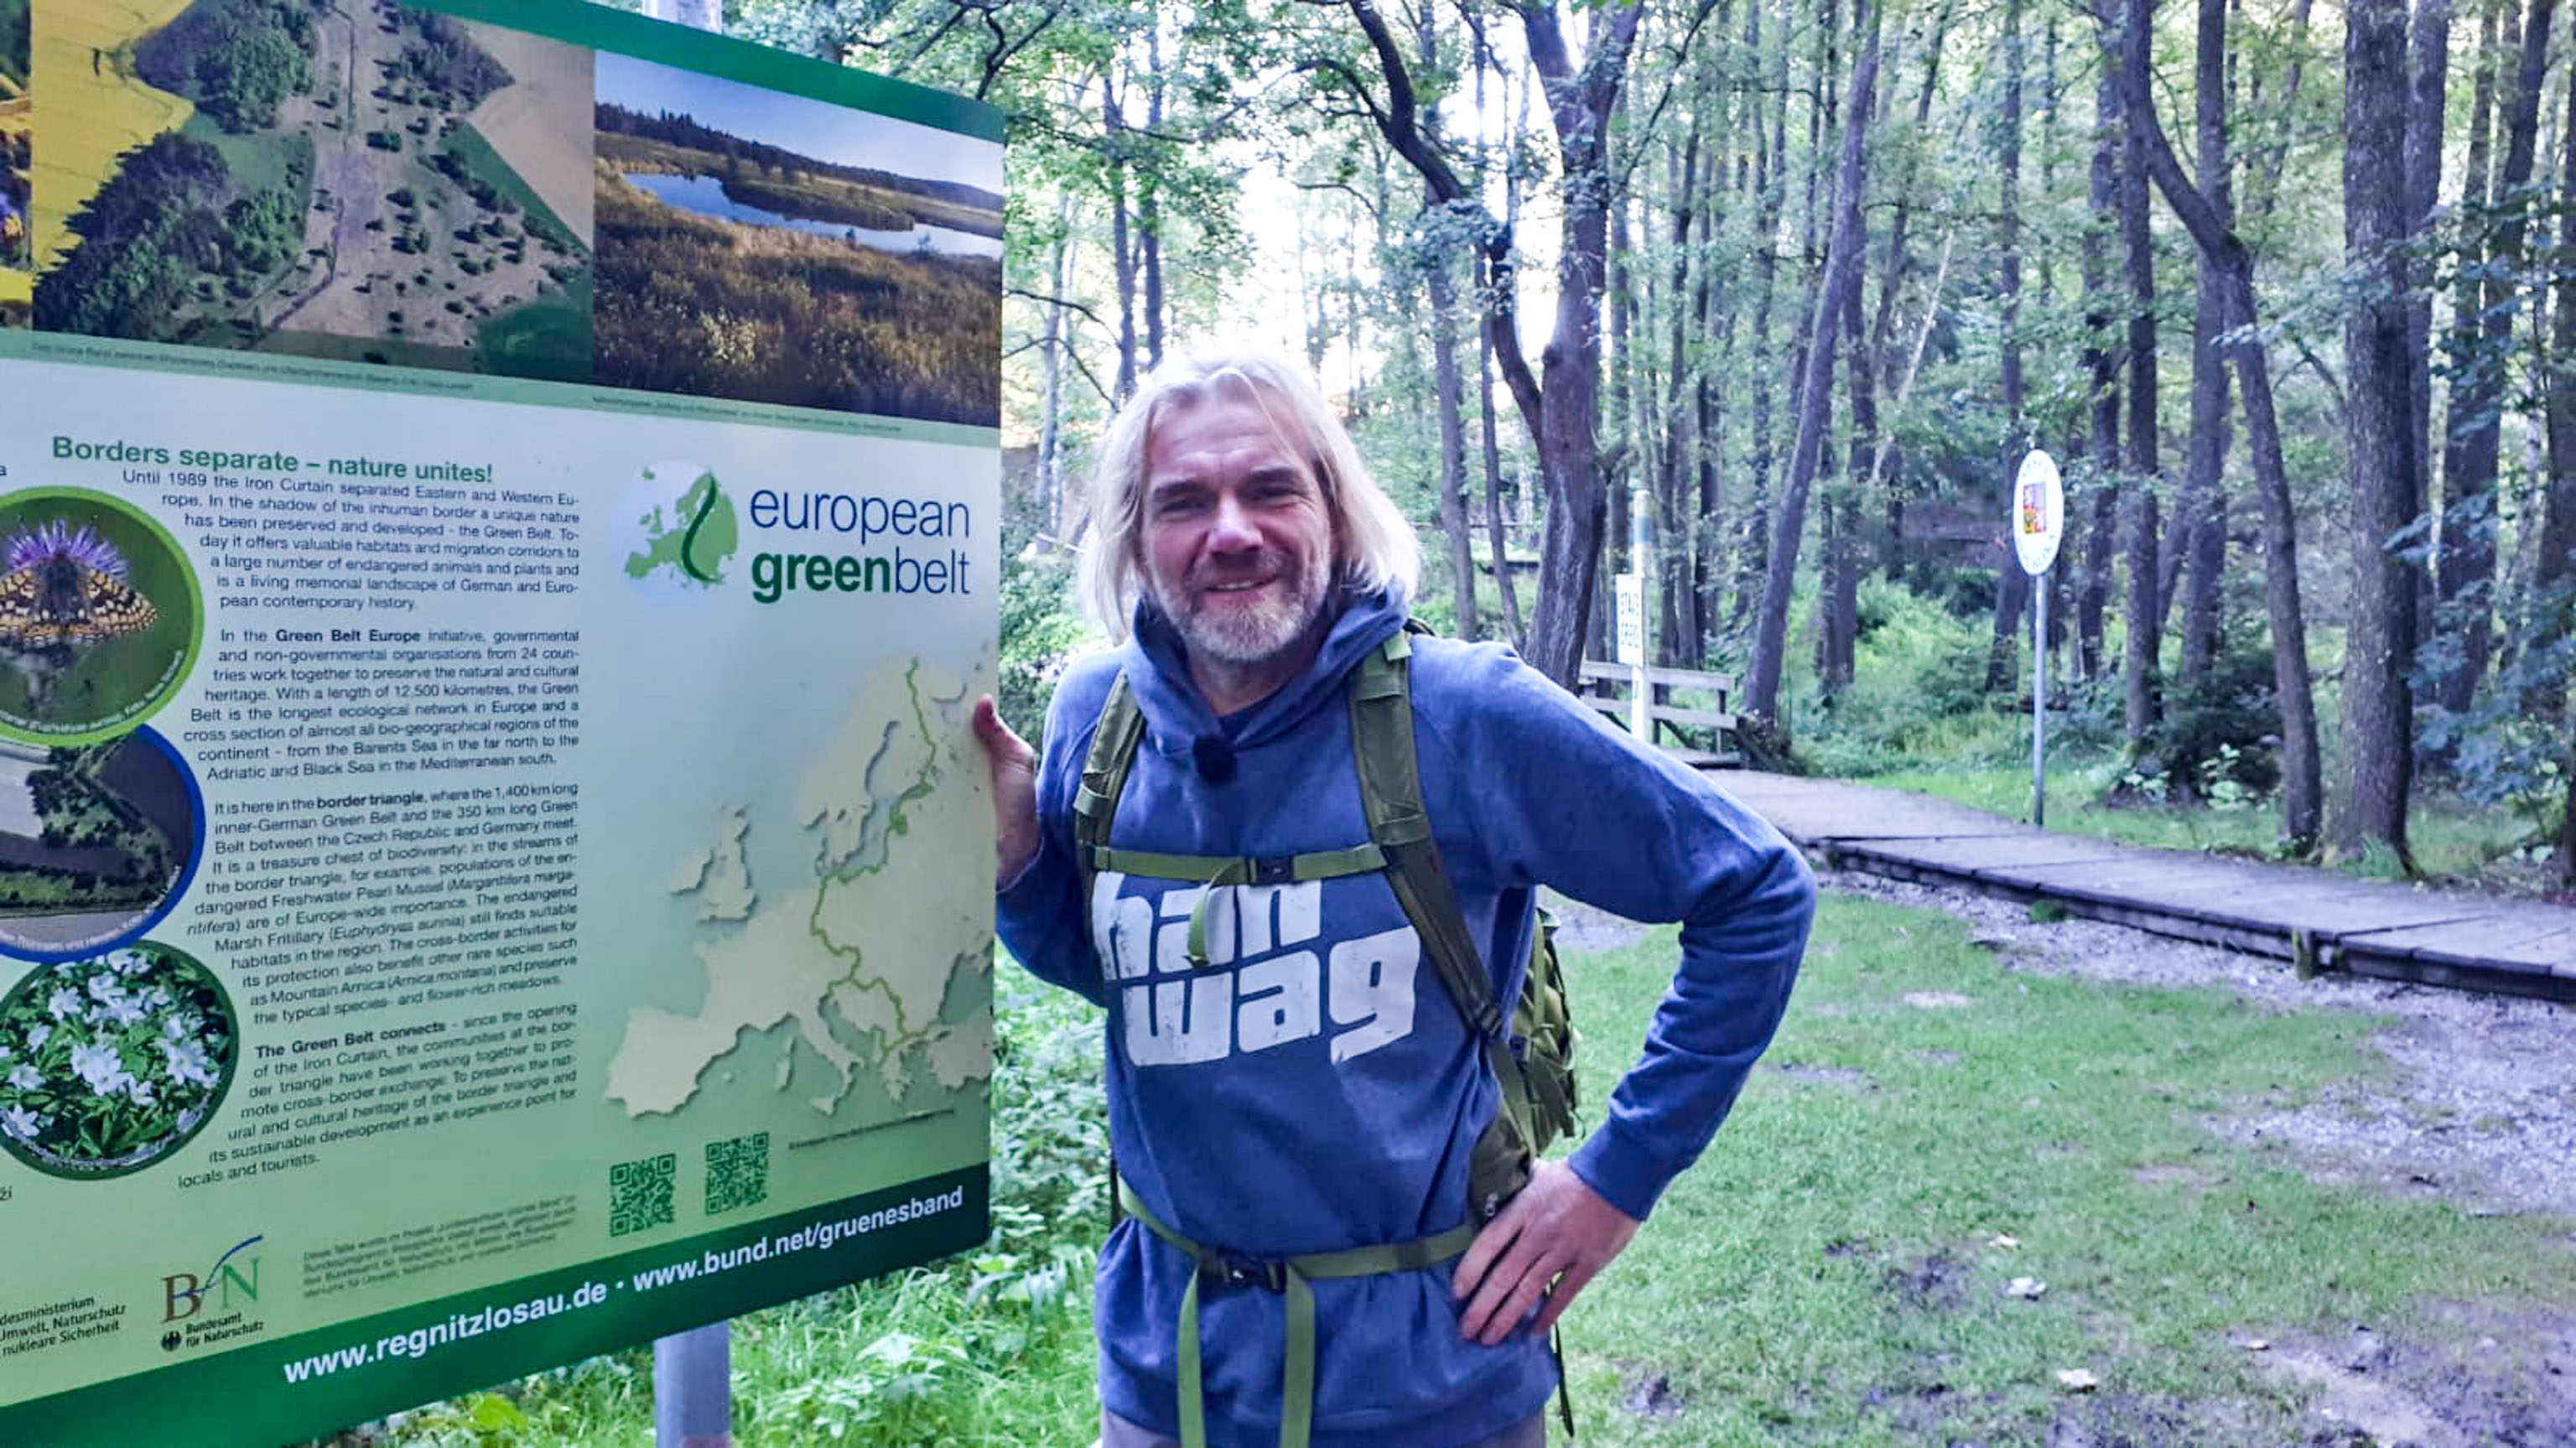 Green Belt Thorsten Hoyer - long distance hiking - hiking trails Germany - hiking in Germany - top trails in Germany - Long distance hiking trails - Long distance trails - best long distance hikes in the world